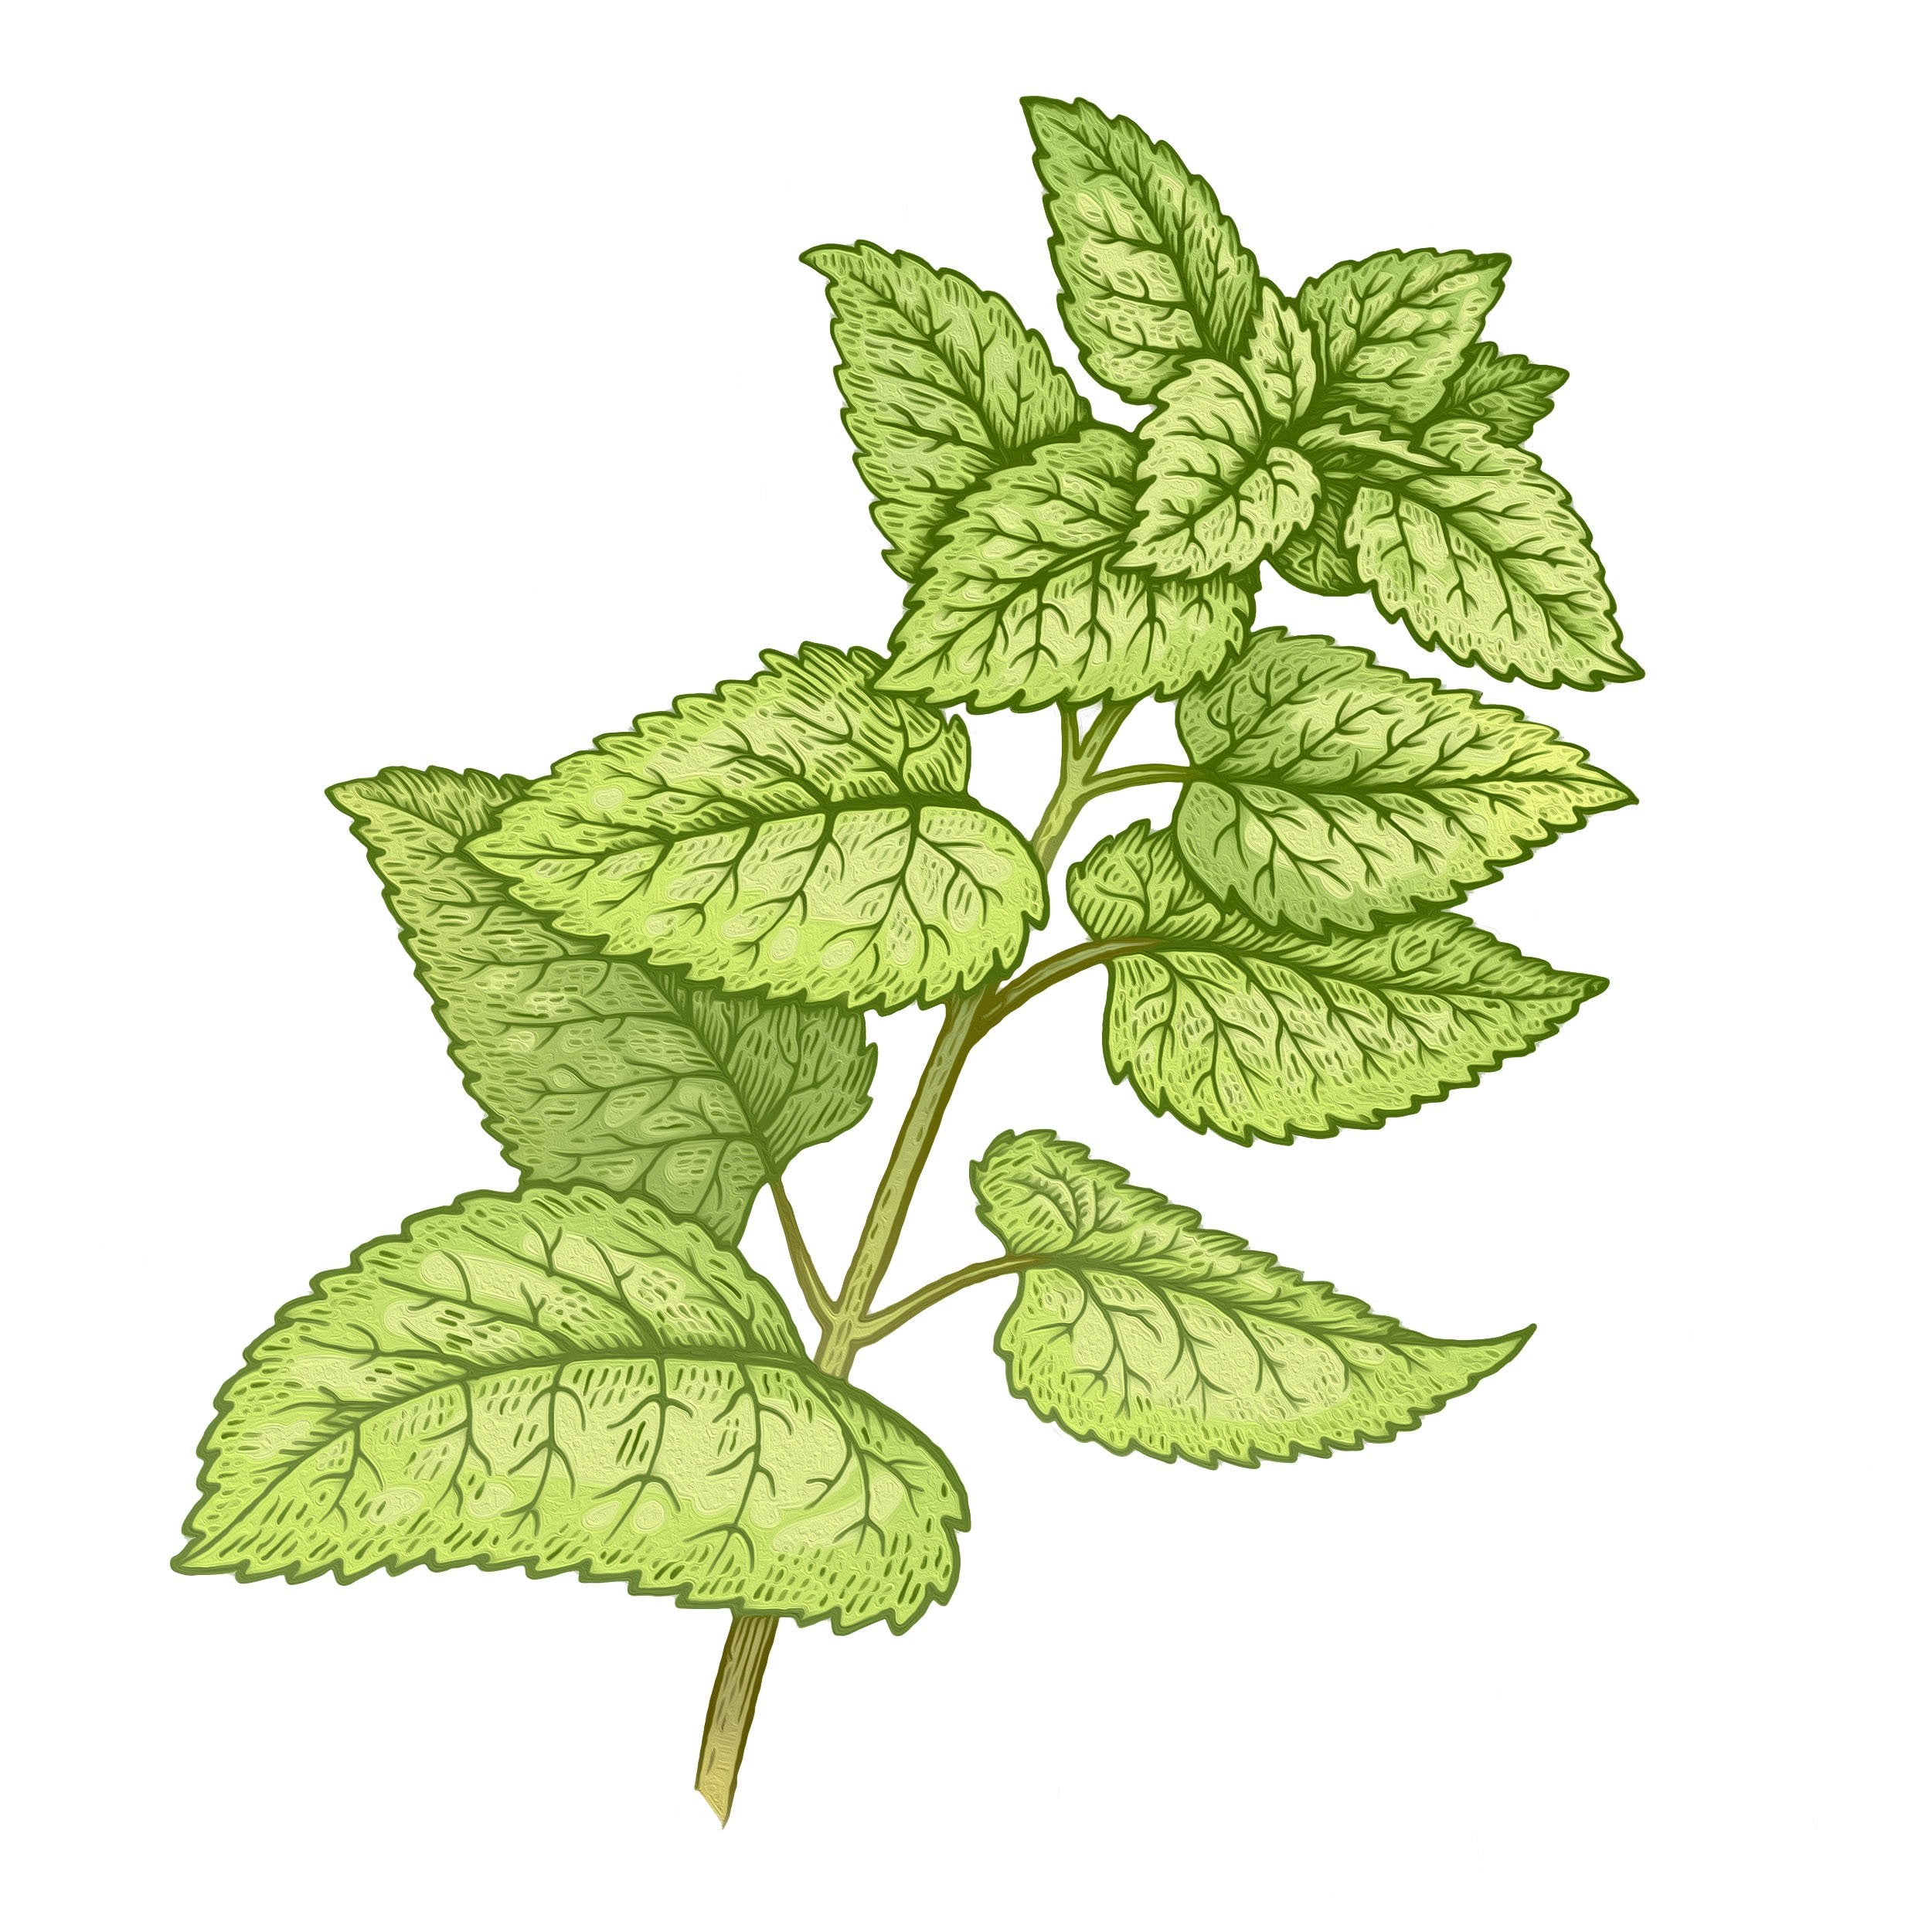 Lemon Balm Herb Extract (Melissa Officinalis)